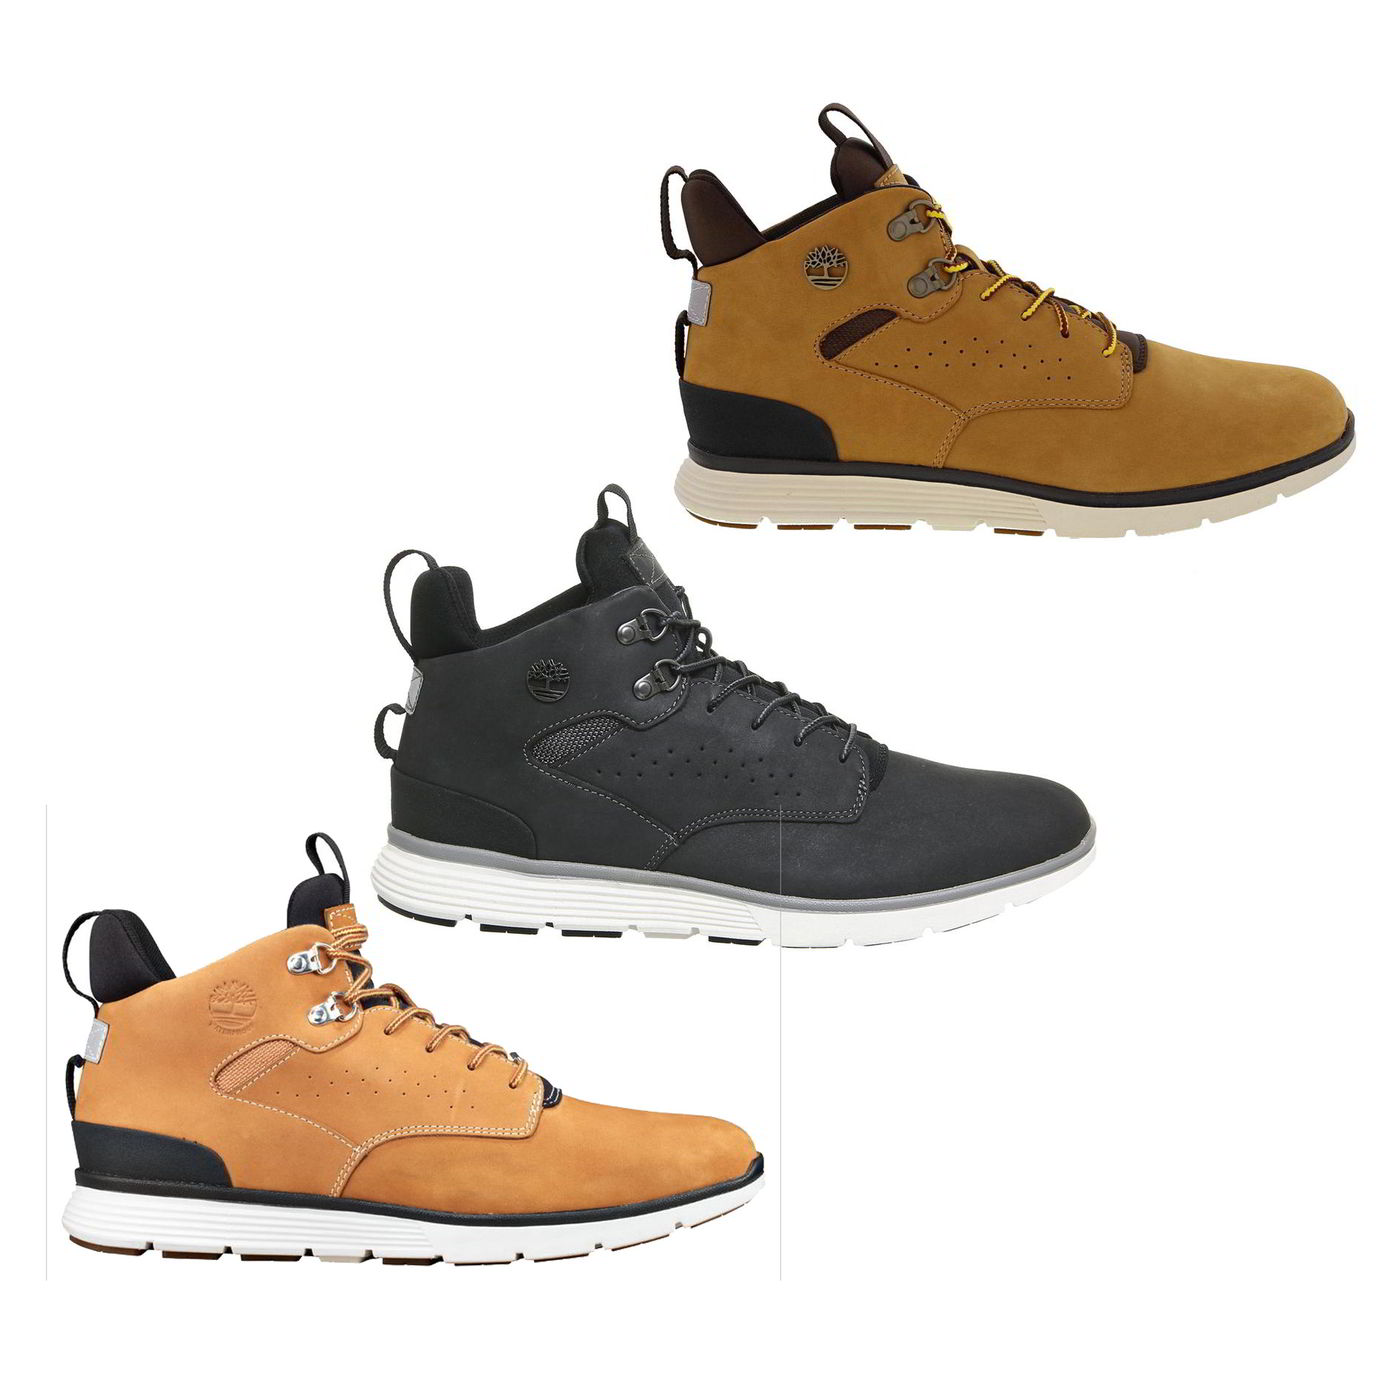 8a0541eb39bad5 Details about Timberland Killington Hiker Chukka Mens Wide Fit Wheat Grey Boots  Size UK 7-11